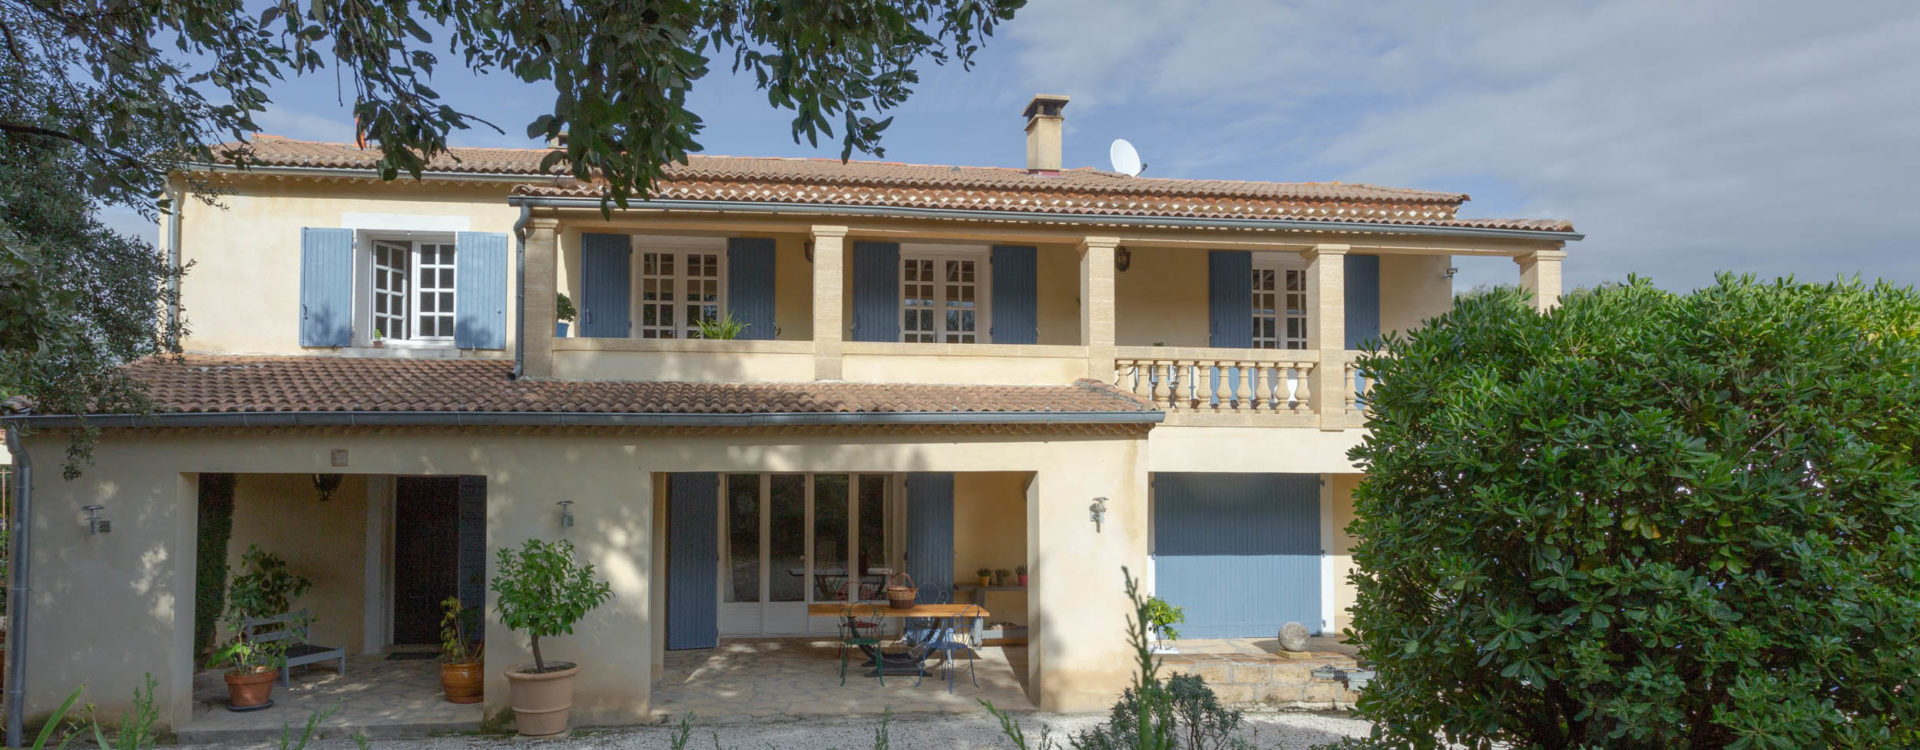 Large property 300 m² in Collias / 3 appart.